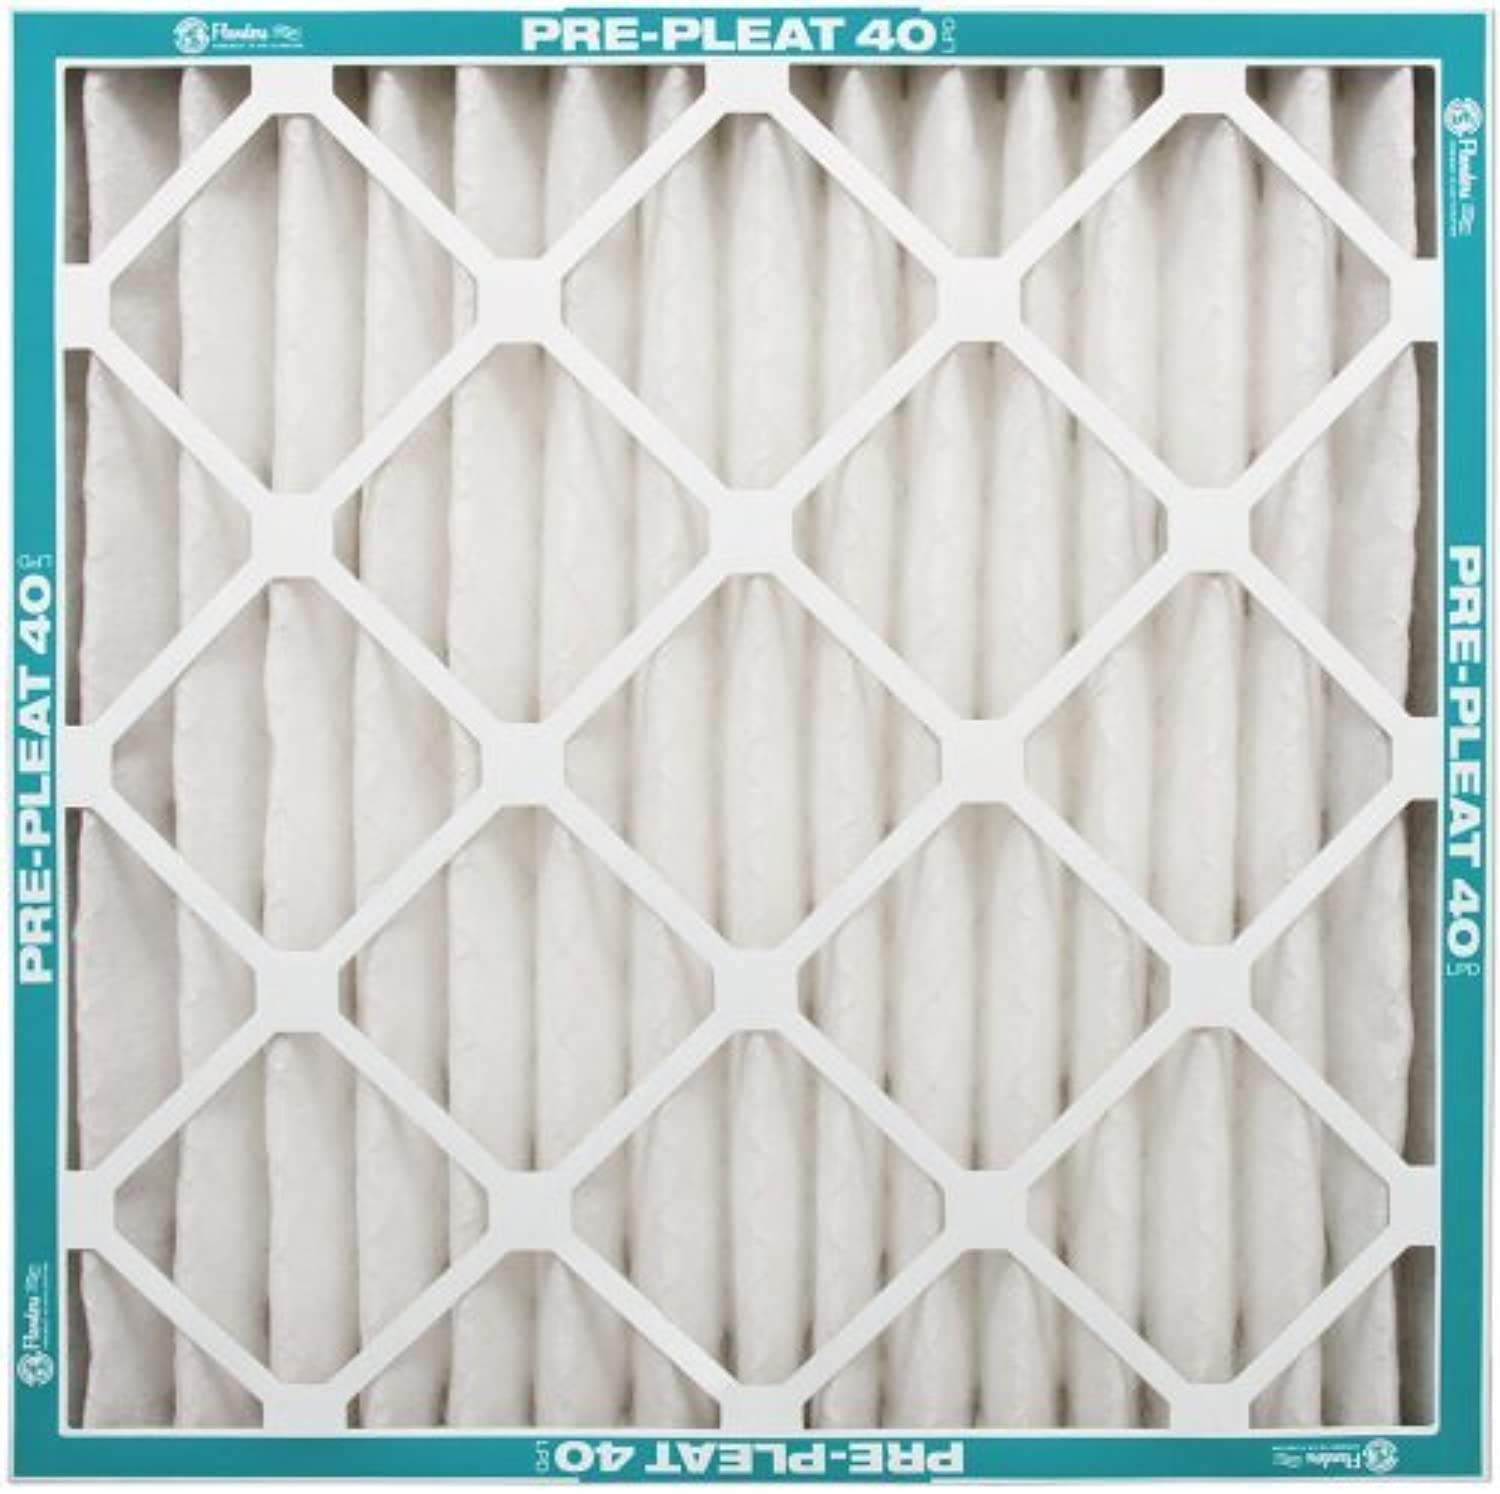 NaturalAire Pre-Pleat 40 Air Filter MERV 8 14 x 25 x 1-Inch 12-Pack [並行輸入品]